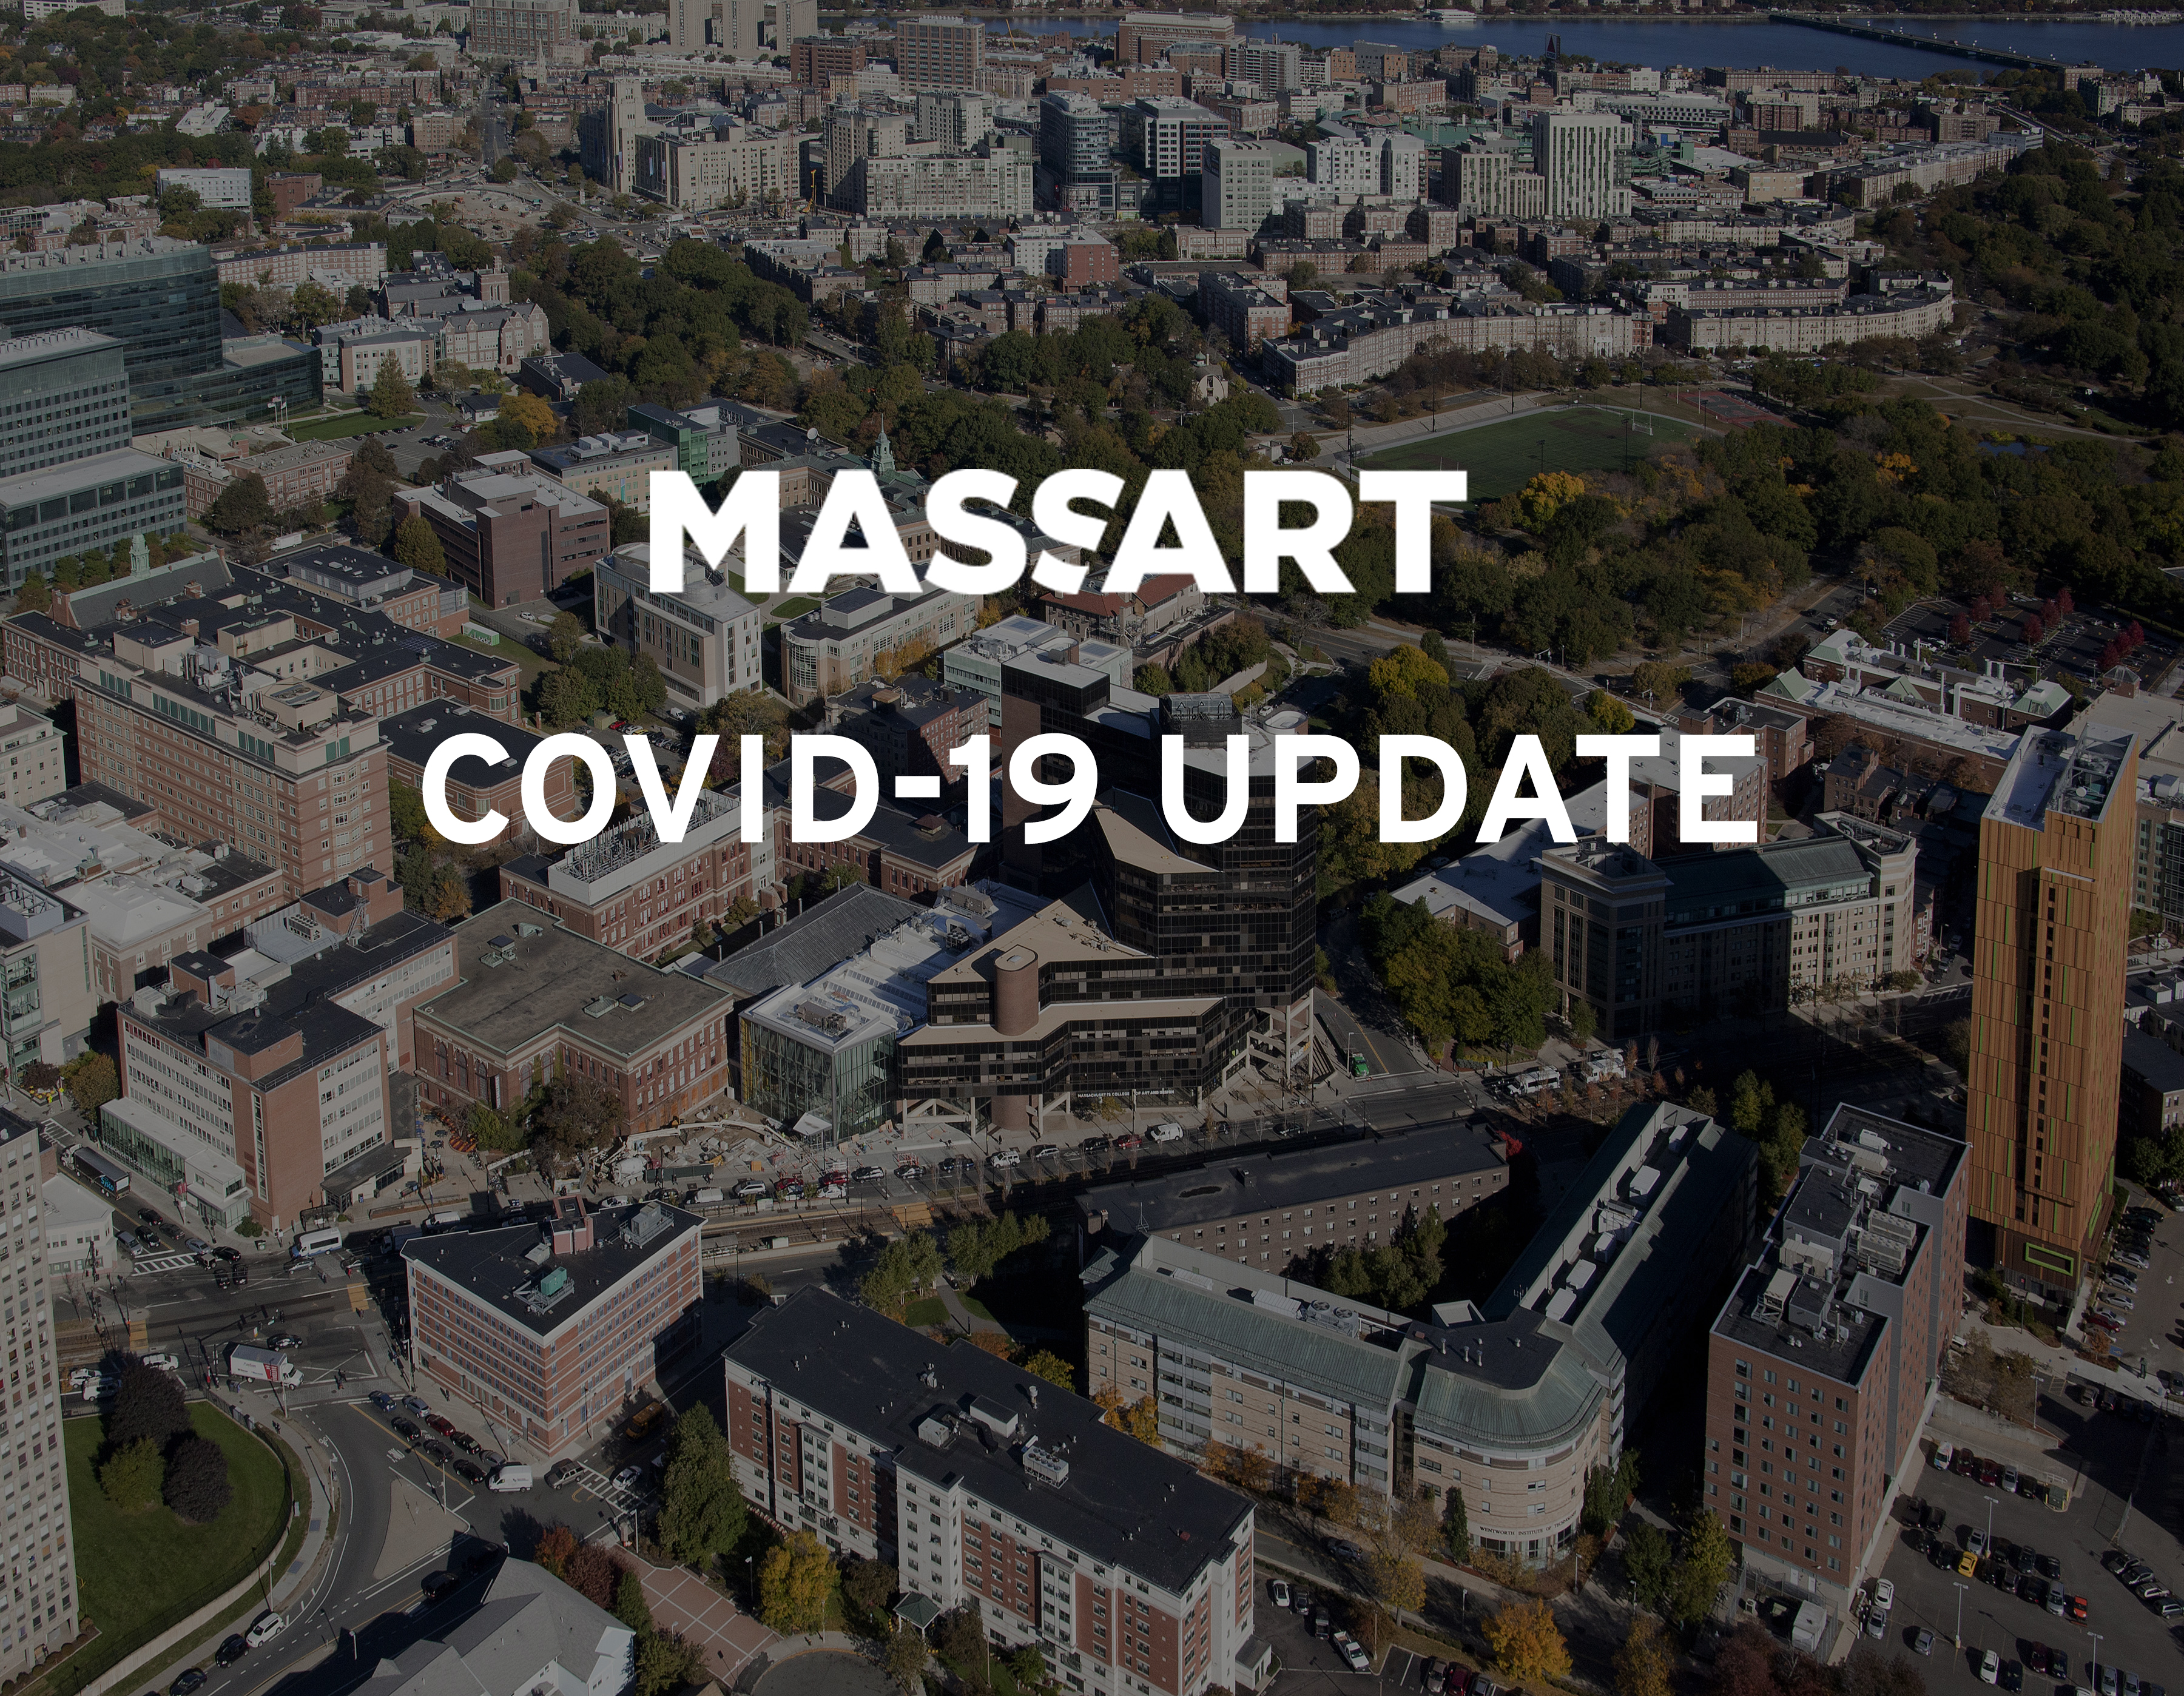 MassArt Aerial View with Covid-19 Update